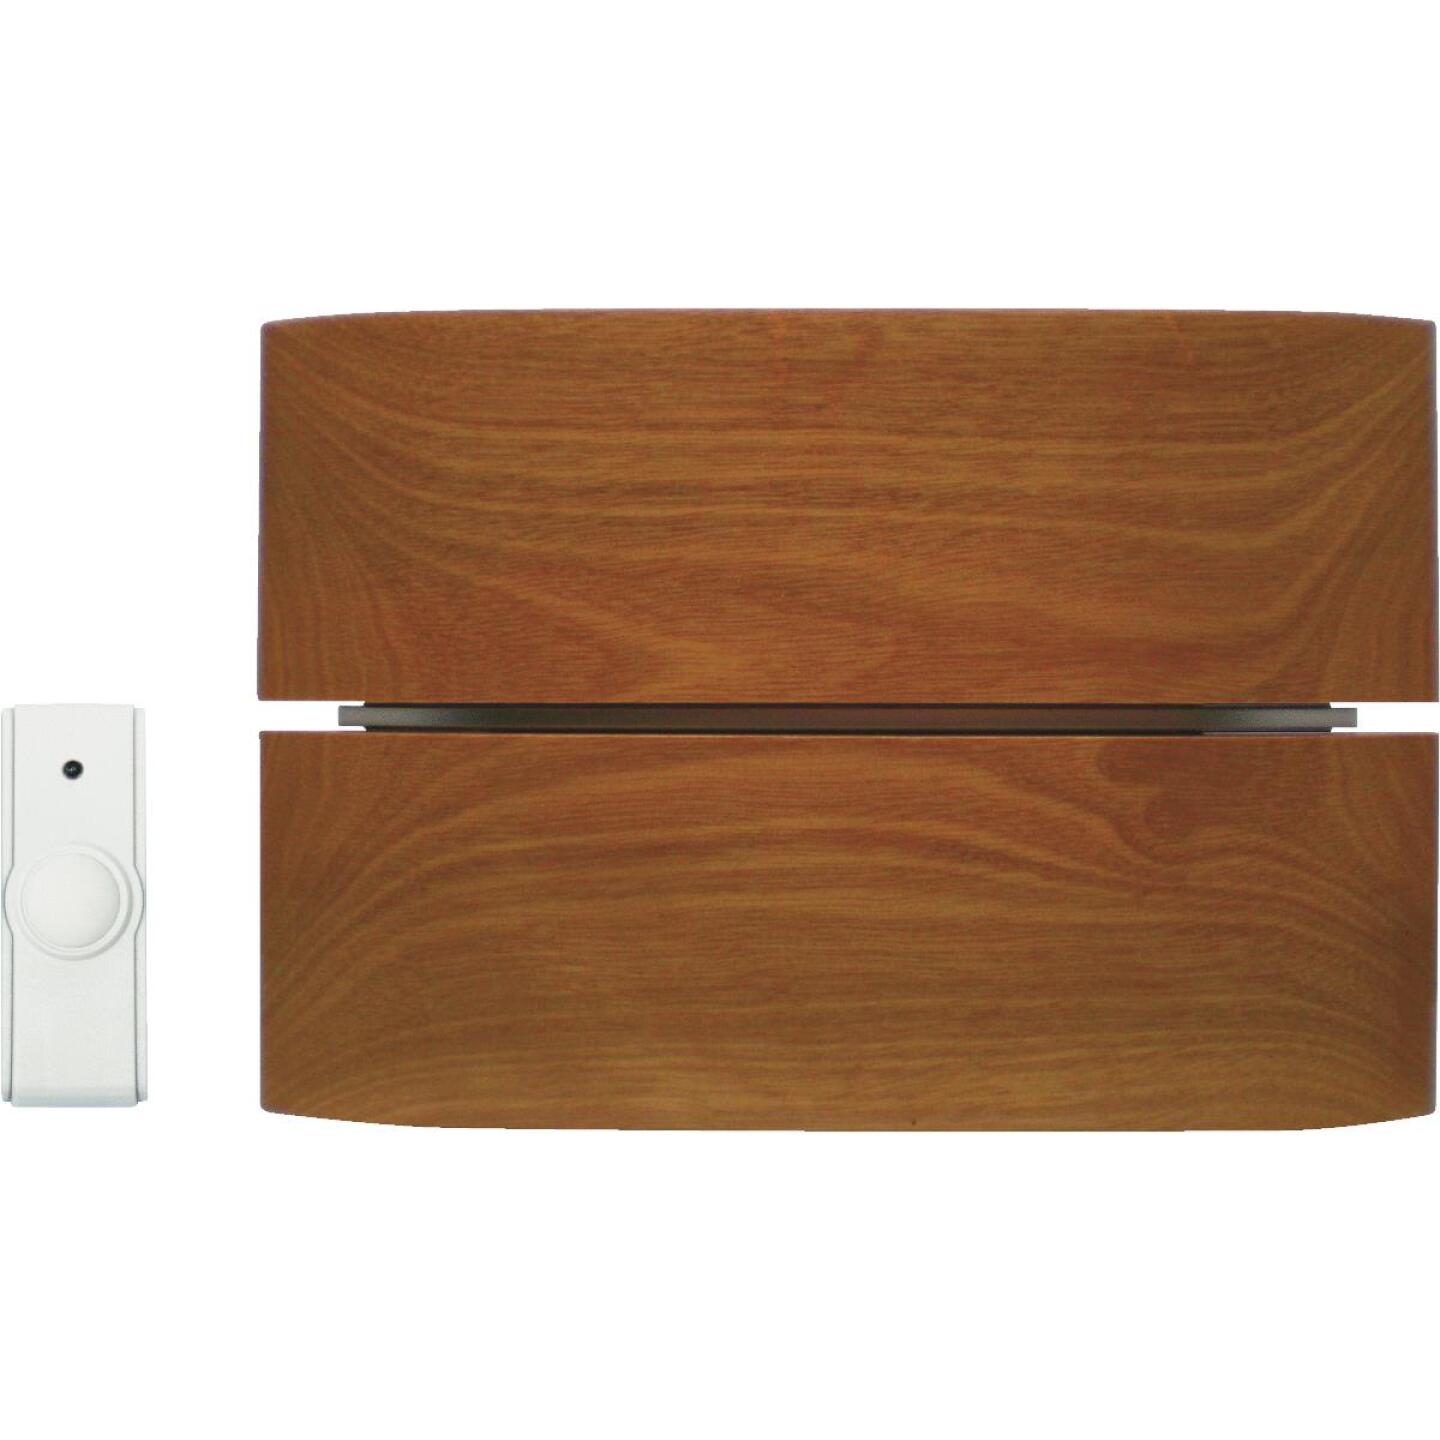 IQ America Step-Up Wireless Wood Door Chime Image 1